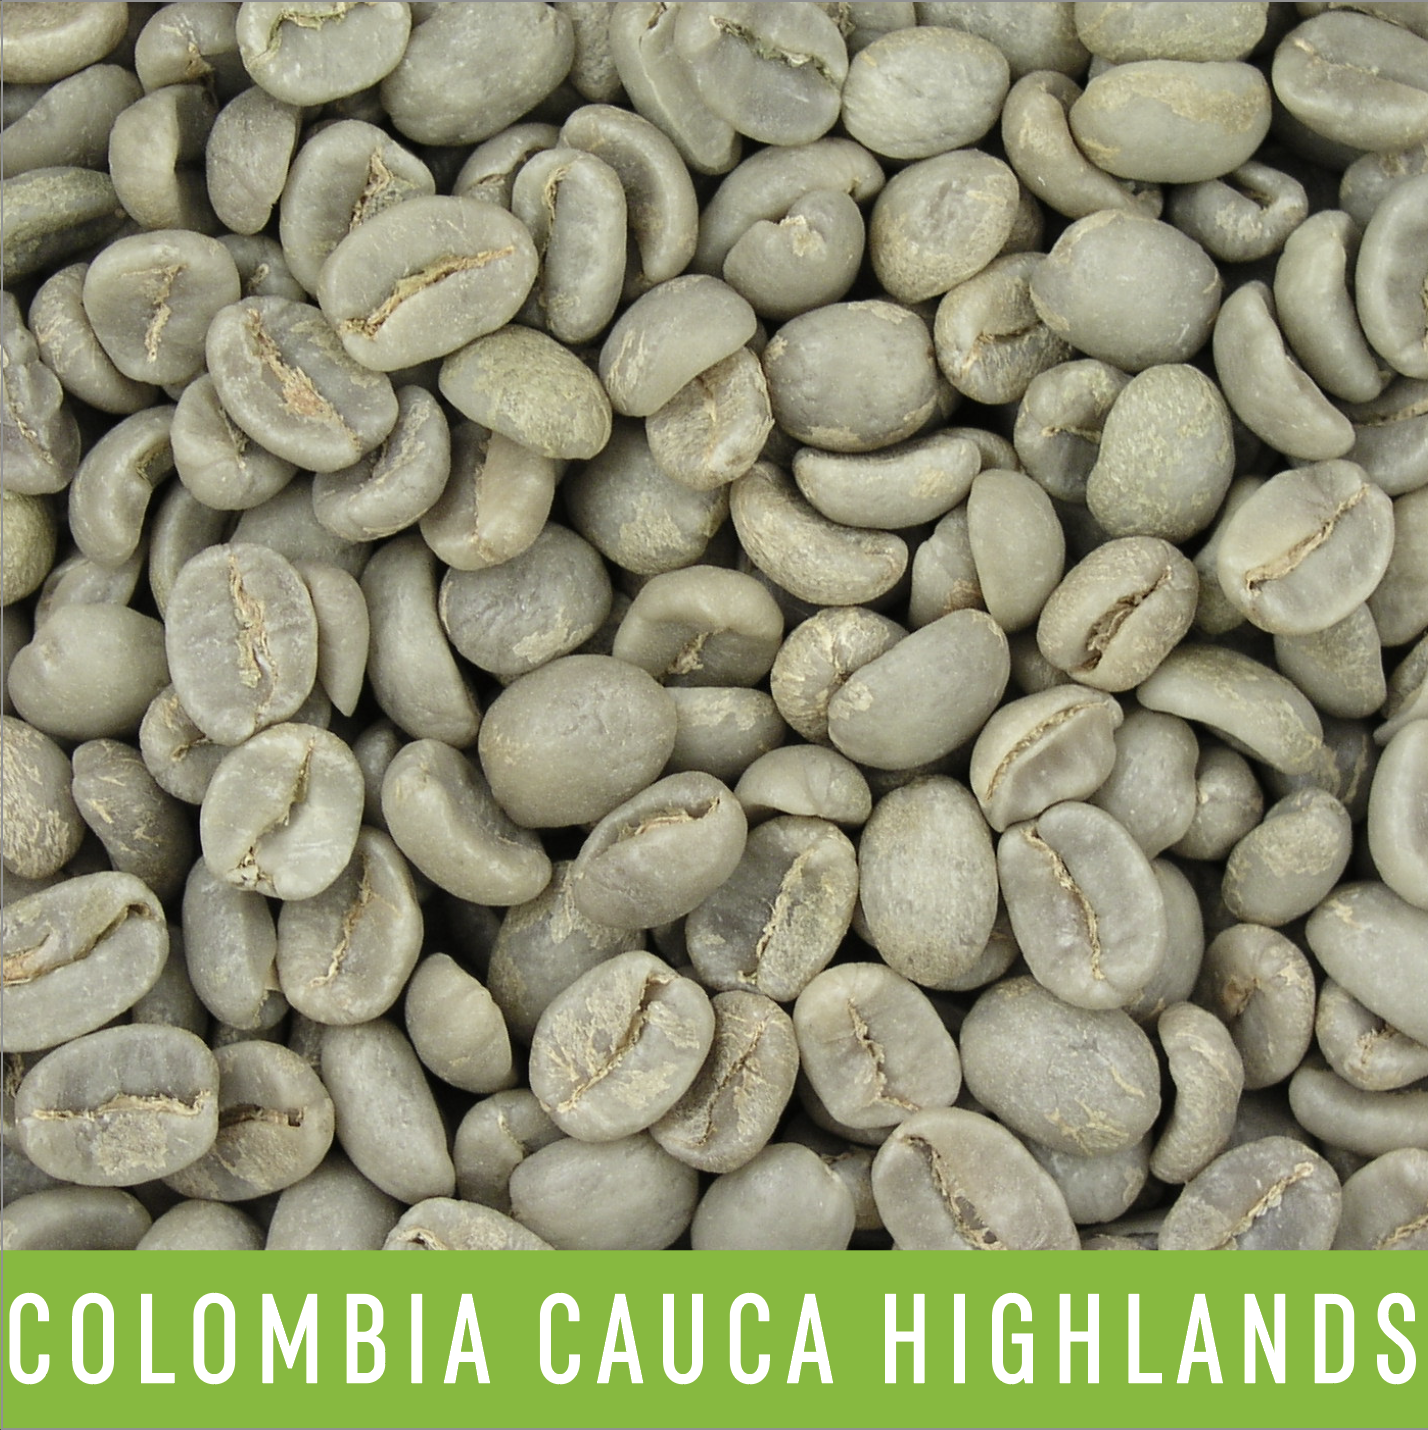 Green Coffee Beans: Colombia Cauca Highlands - 1 LB